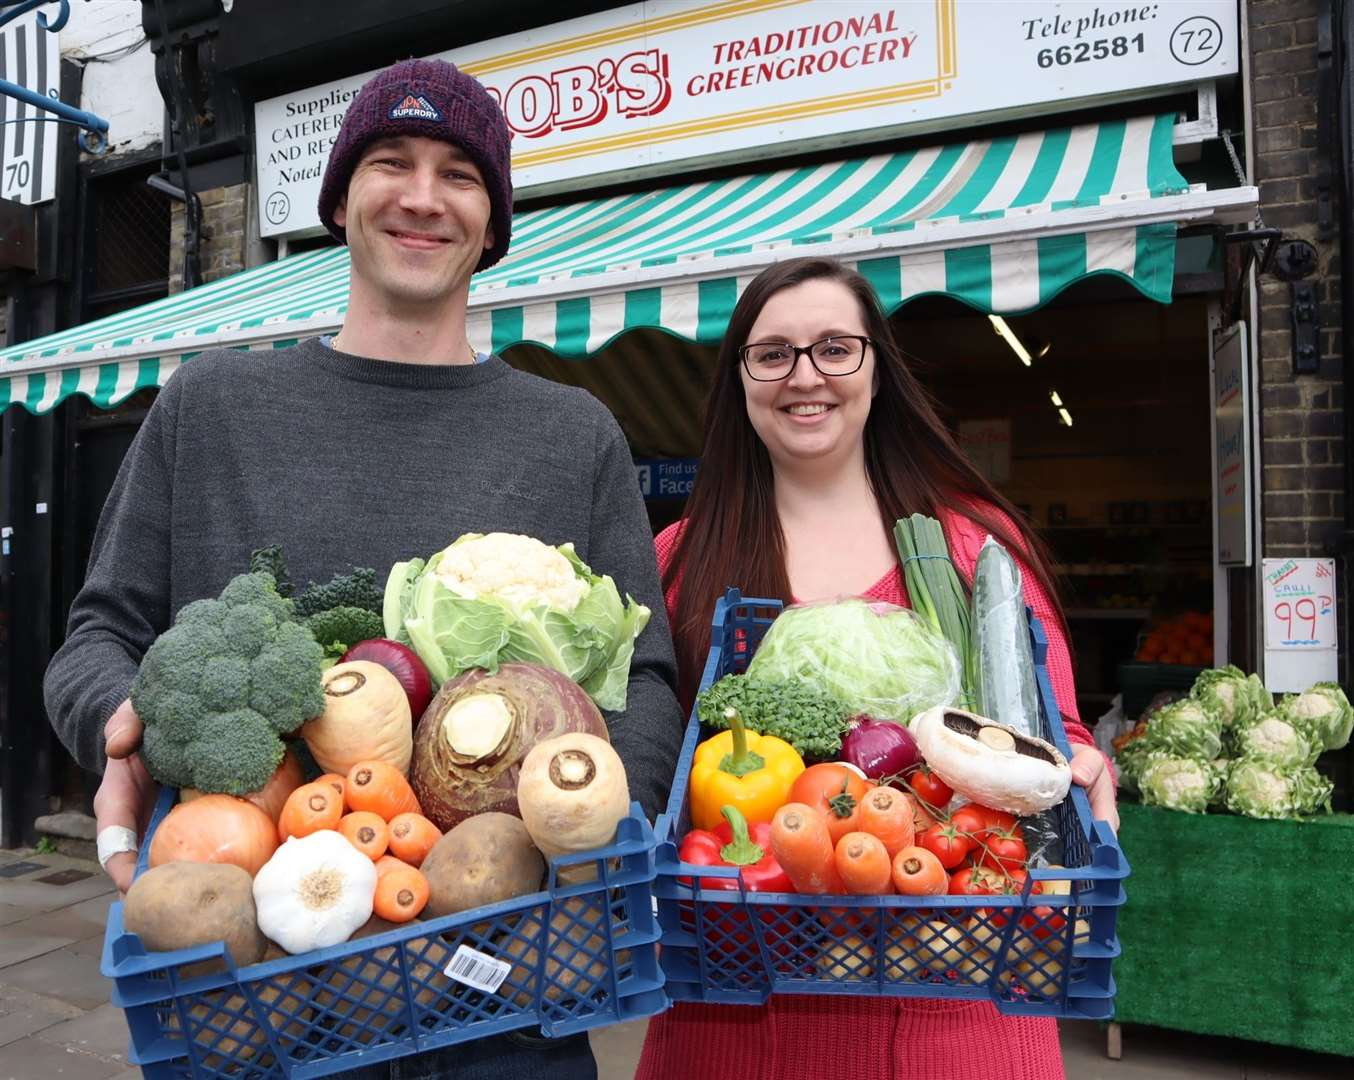 Lewis and Stacey Feaver of Rob's Traditional Greengrocery in Sheerness are fighting back in the battle to keep high street businesses alive by introducing £10 vegetable, salad and fruit packs